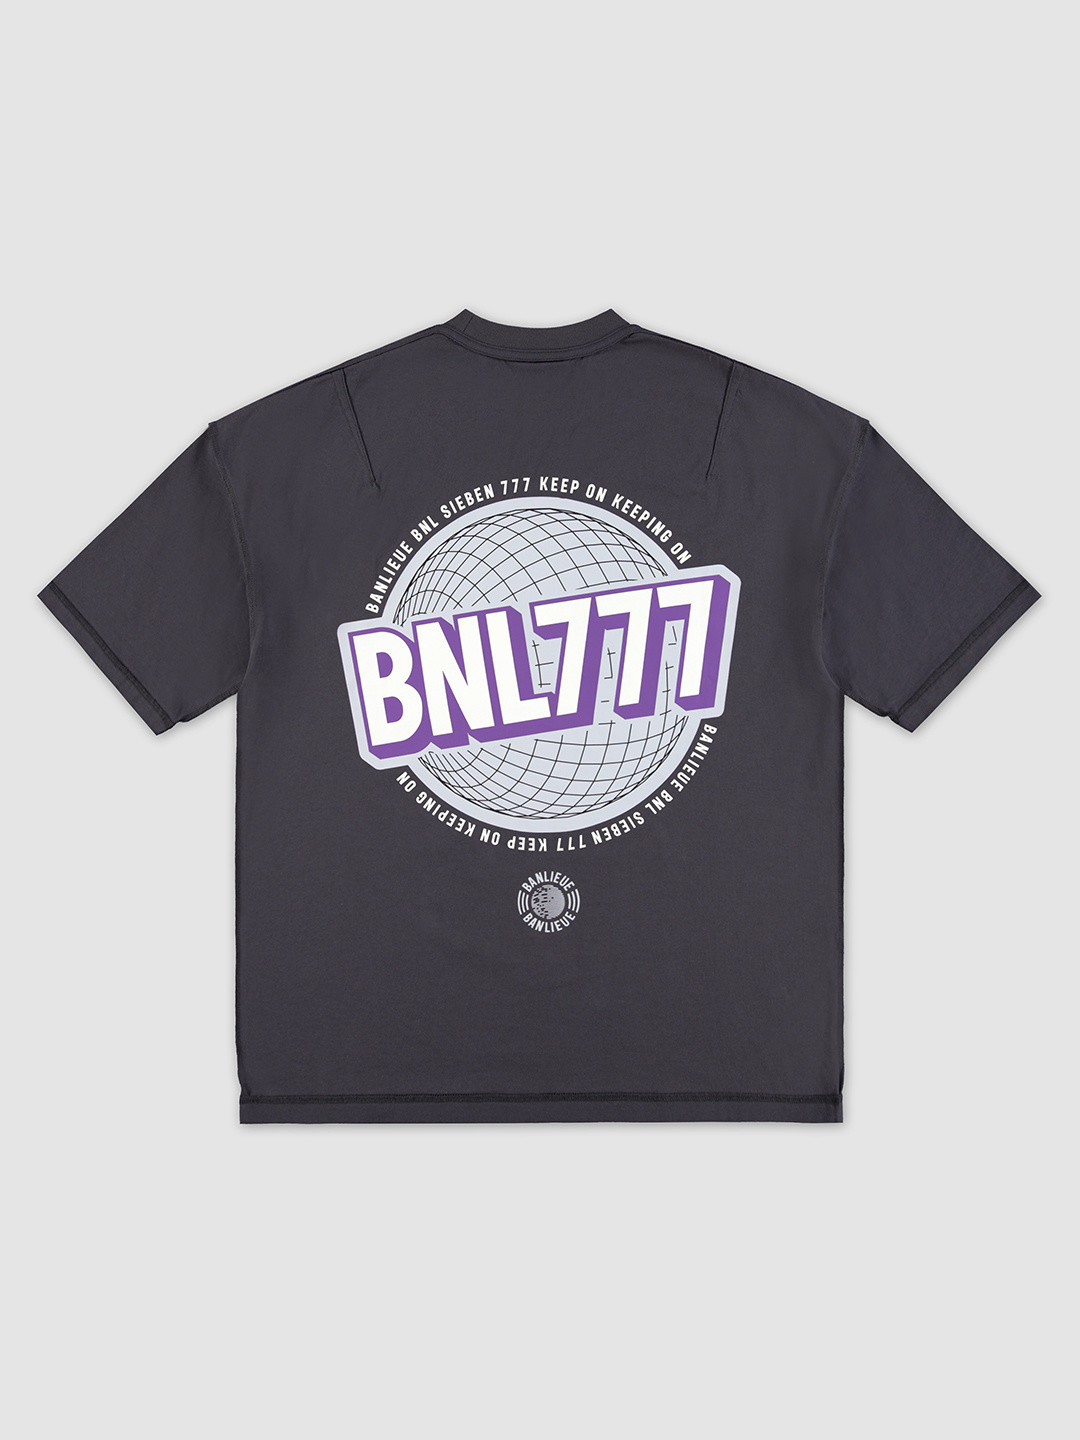 BNL777 T-shirt Vintage Black